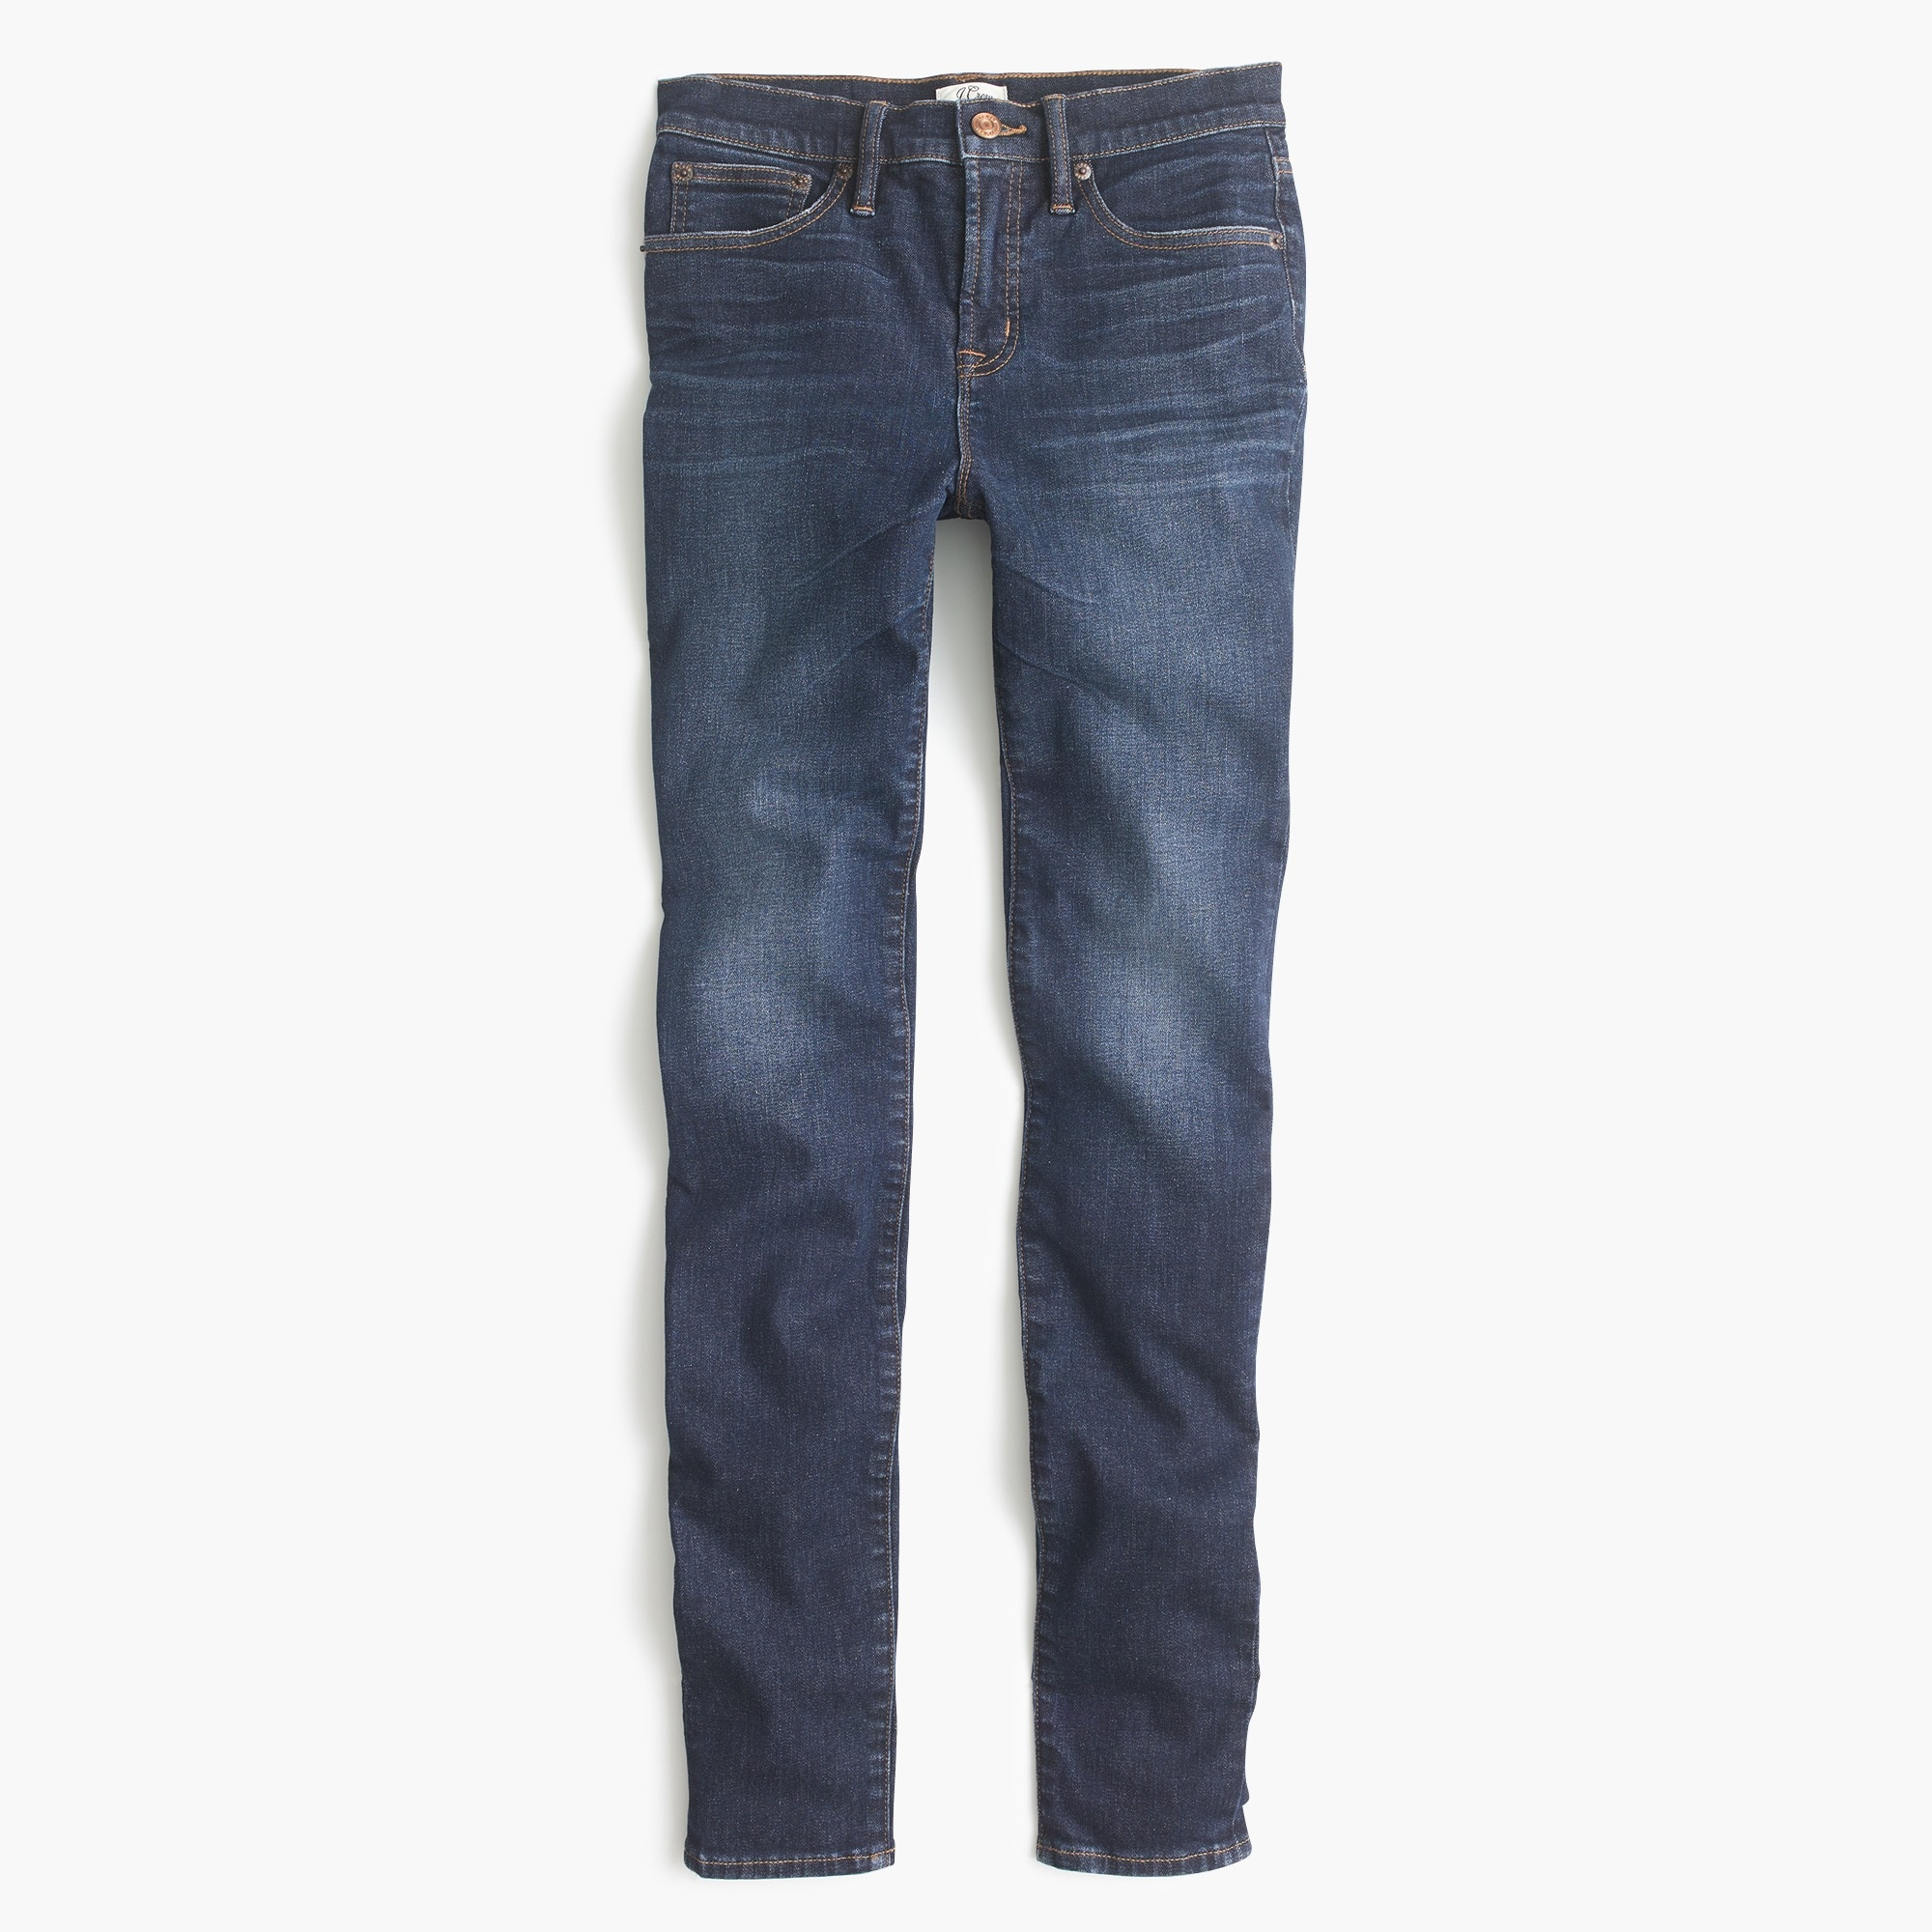 "9"" high-rise stretchy toothpick jean in Solano wash"